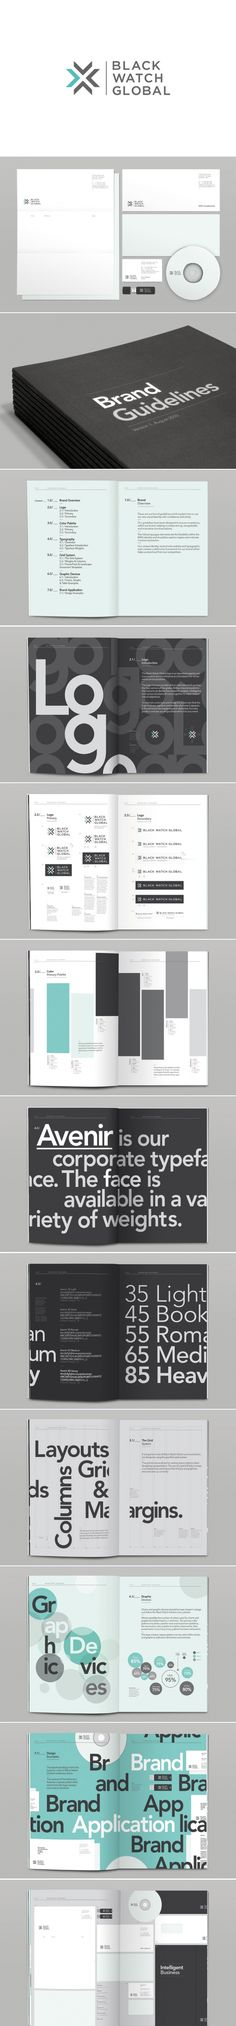 Black Watch Global Identity and Style Guide by Mash Creative, UK